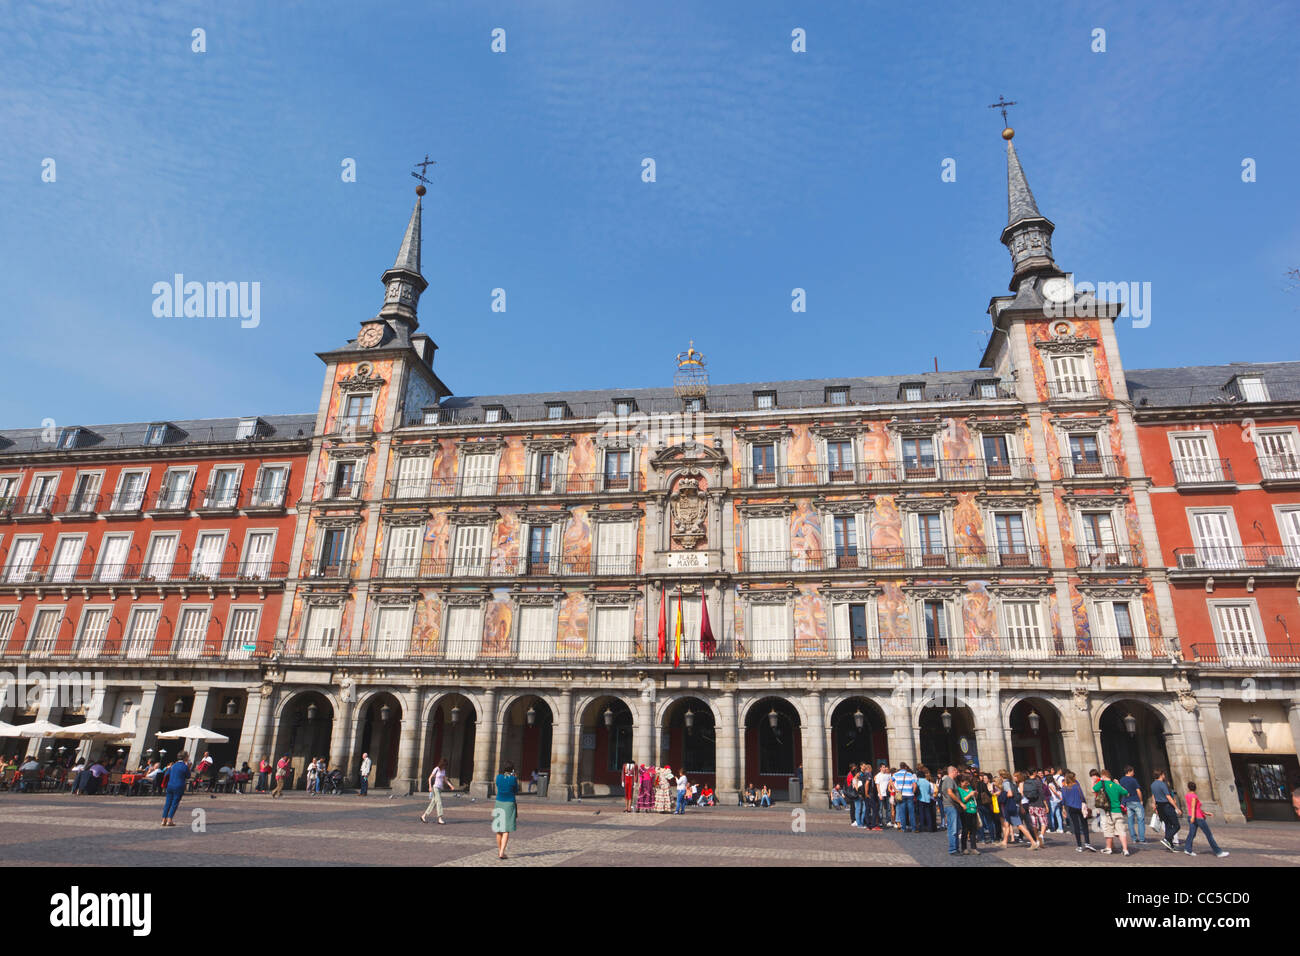 Madrid, Spain. Plaza Mayor. Murals on facade. - Stock Image